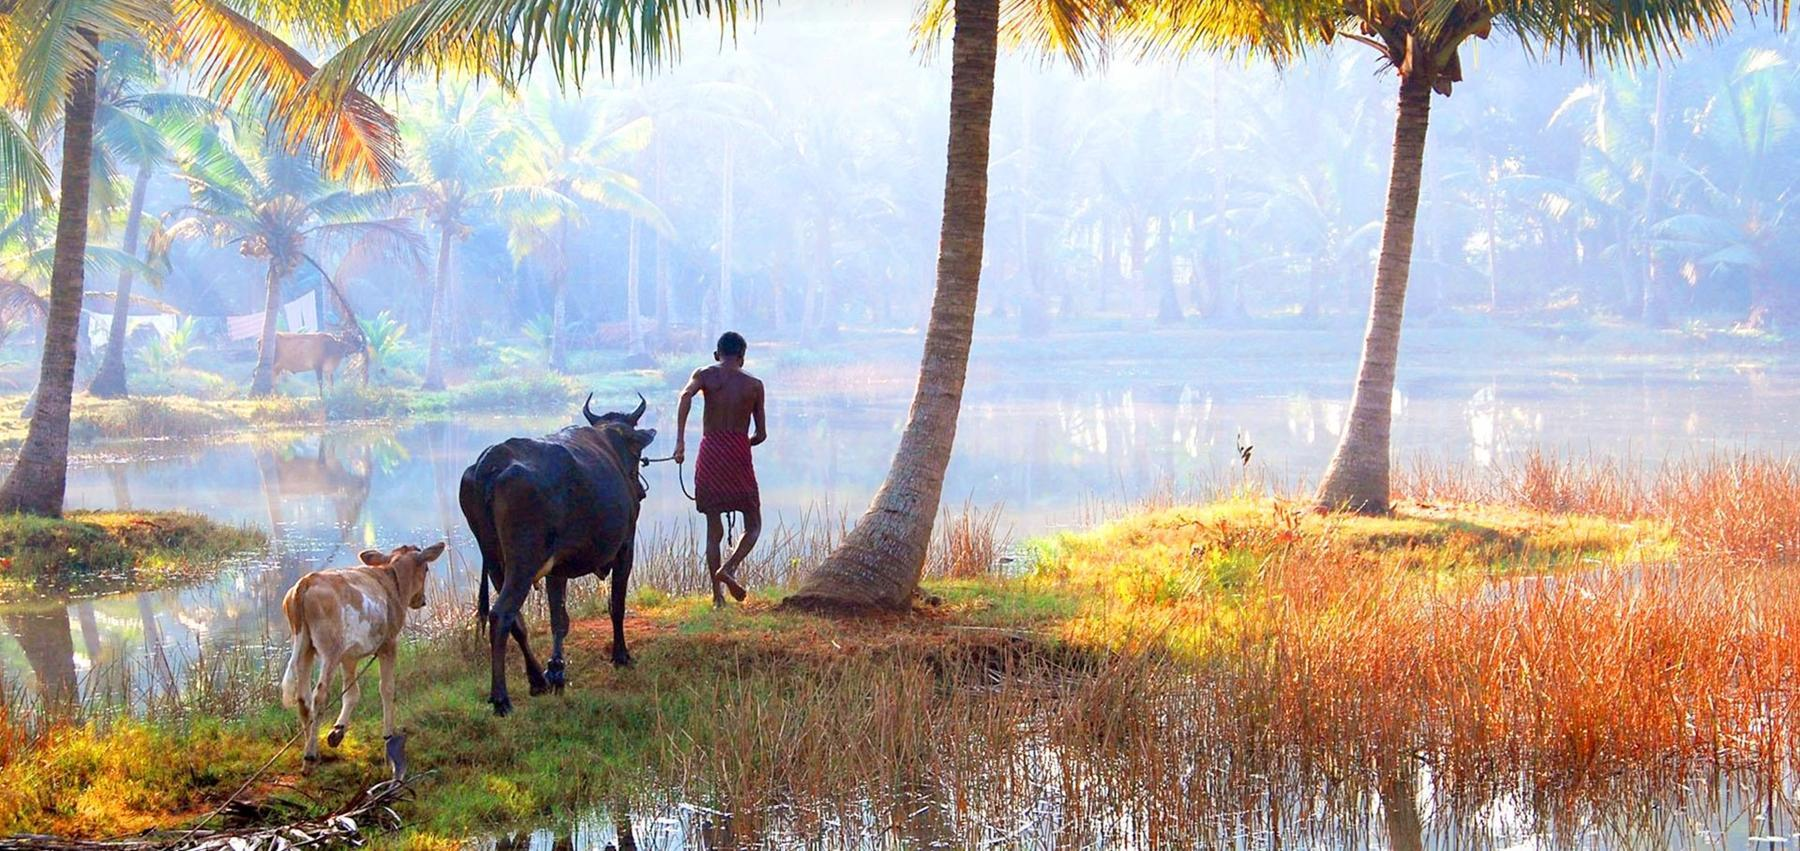 Village walk in Kerala